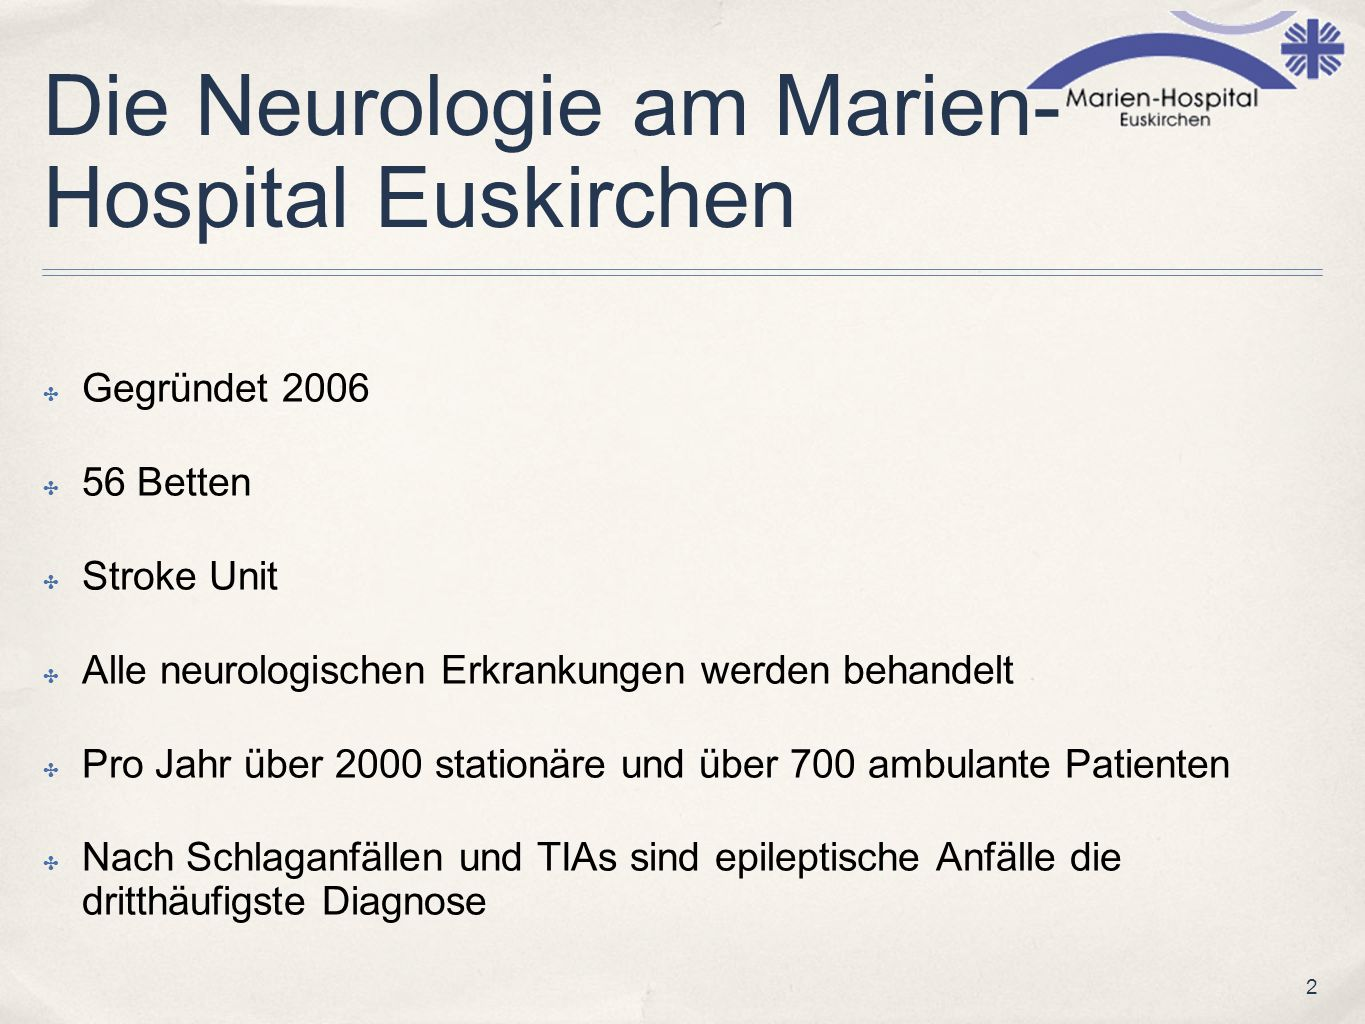 Die Neurologie am Marien-Hospital Euskirchen